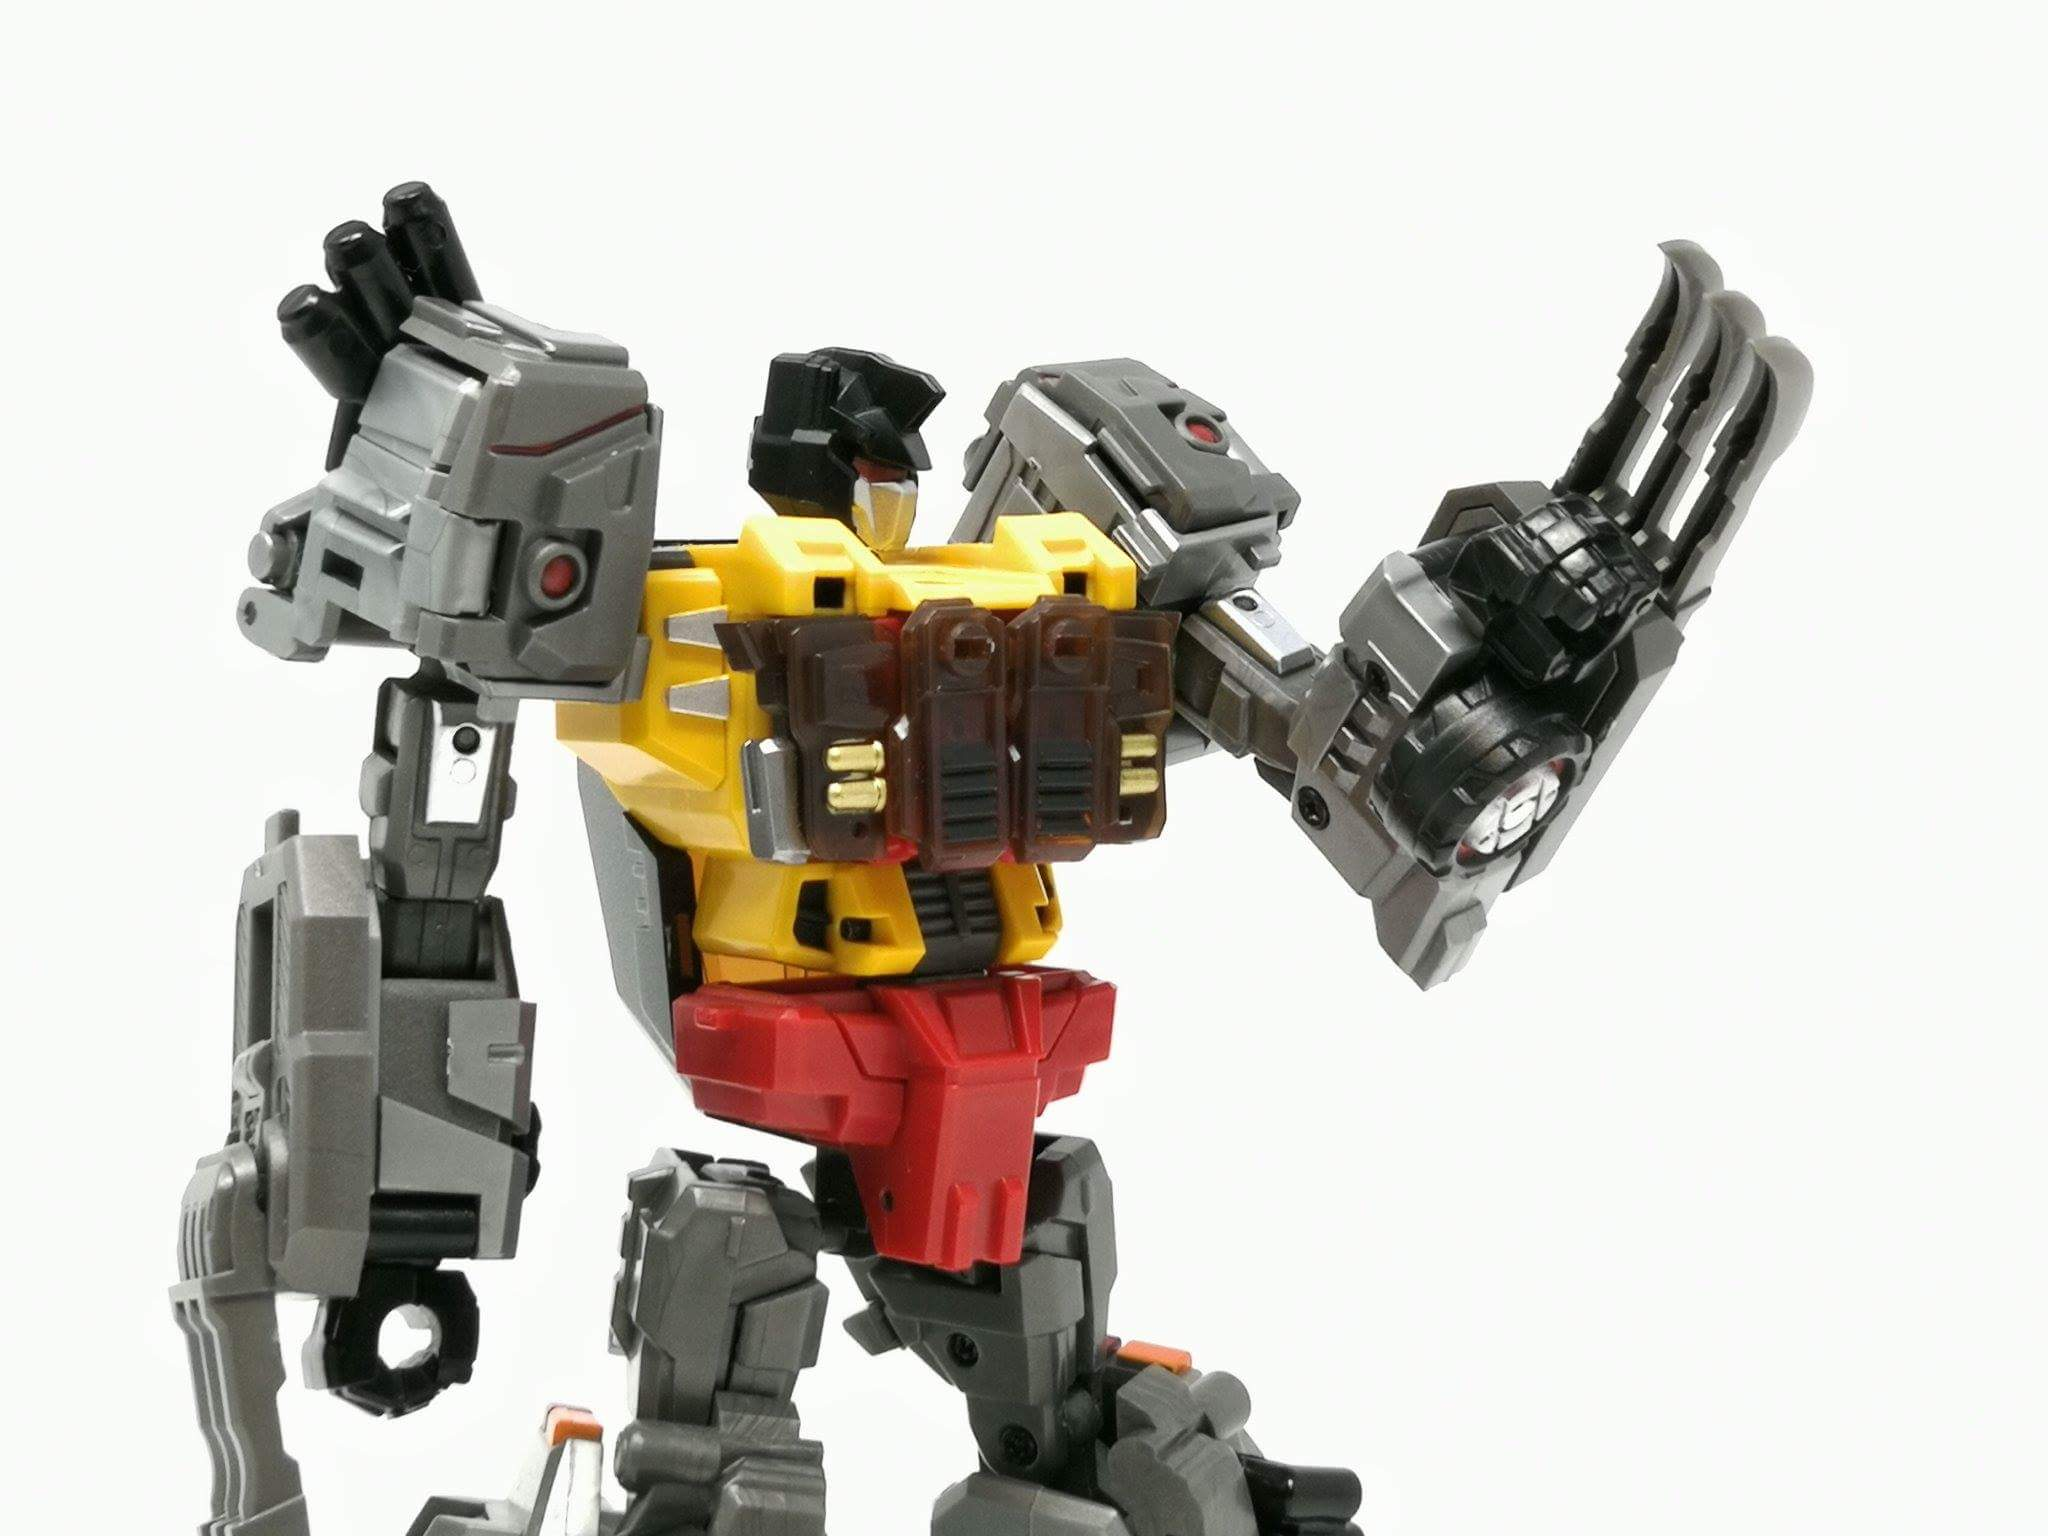 [FansProject] Produit Tiers - Jouets LER (Lost Exo Realm) - aka Dinobots - Page 4 E166QryL_o